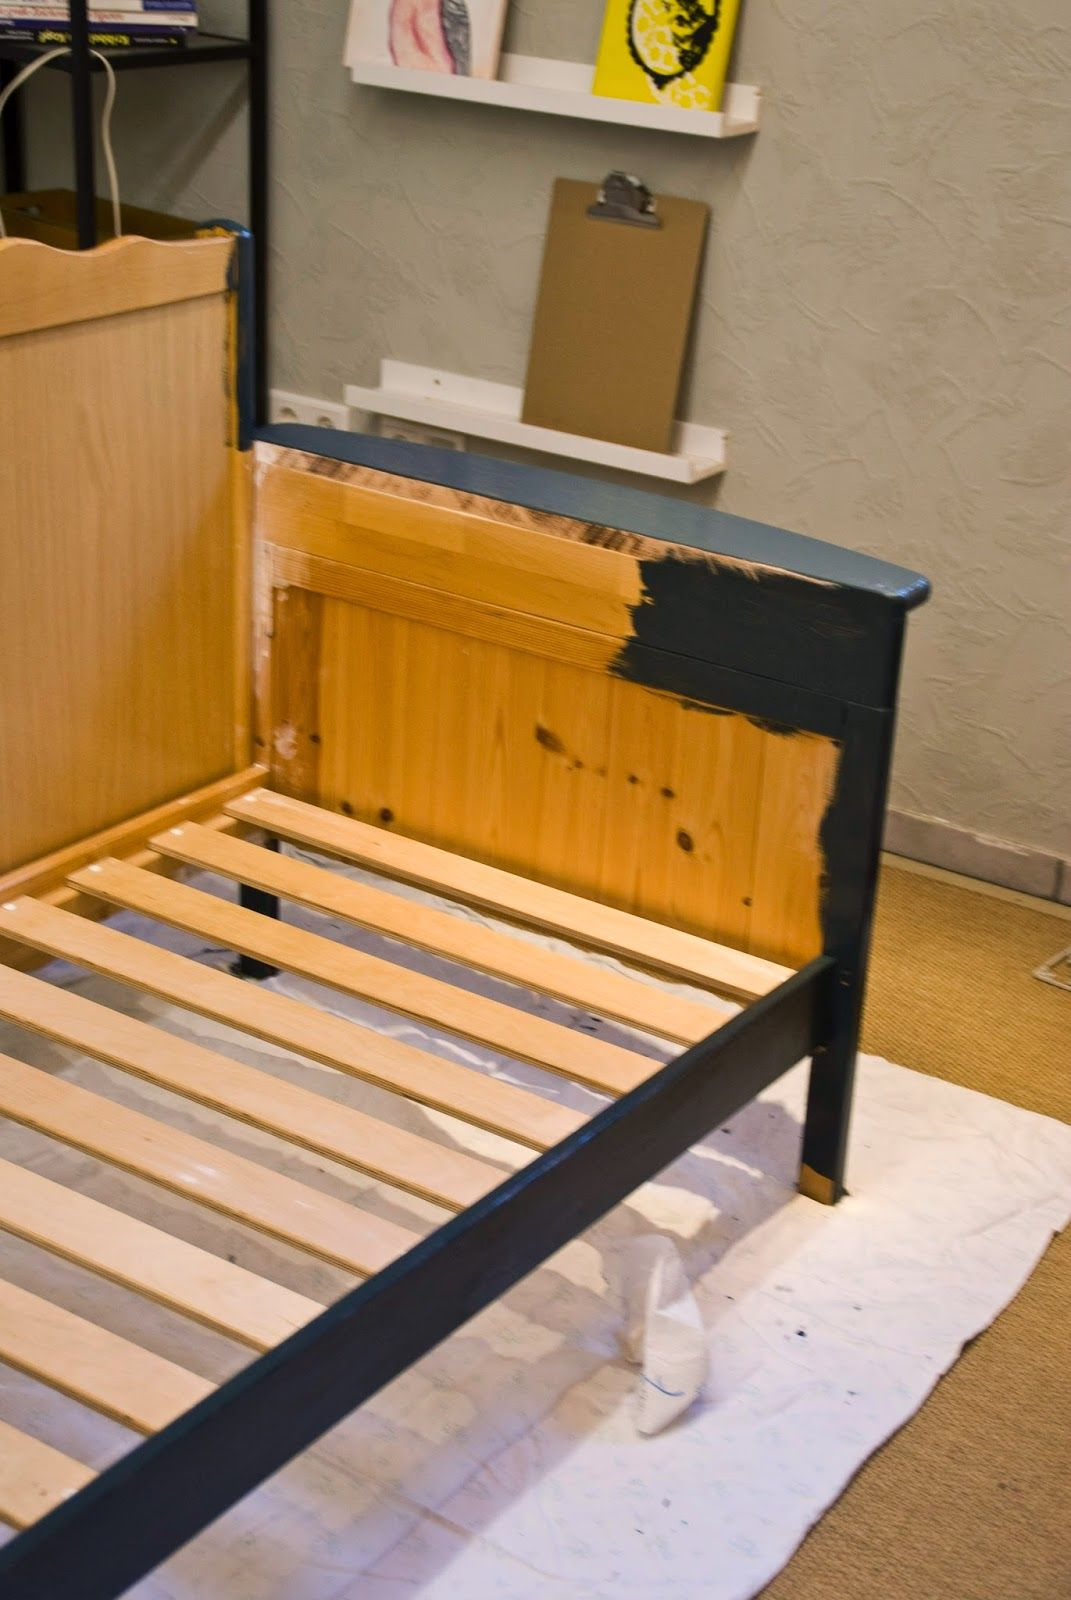 Pudel-design: DIY, new Sofa for my Studio! Made from three old wooden cribs! ;)